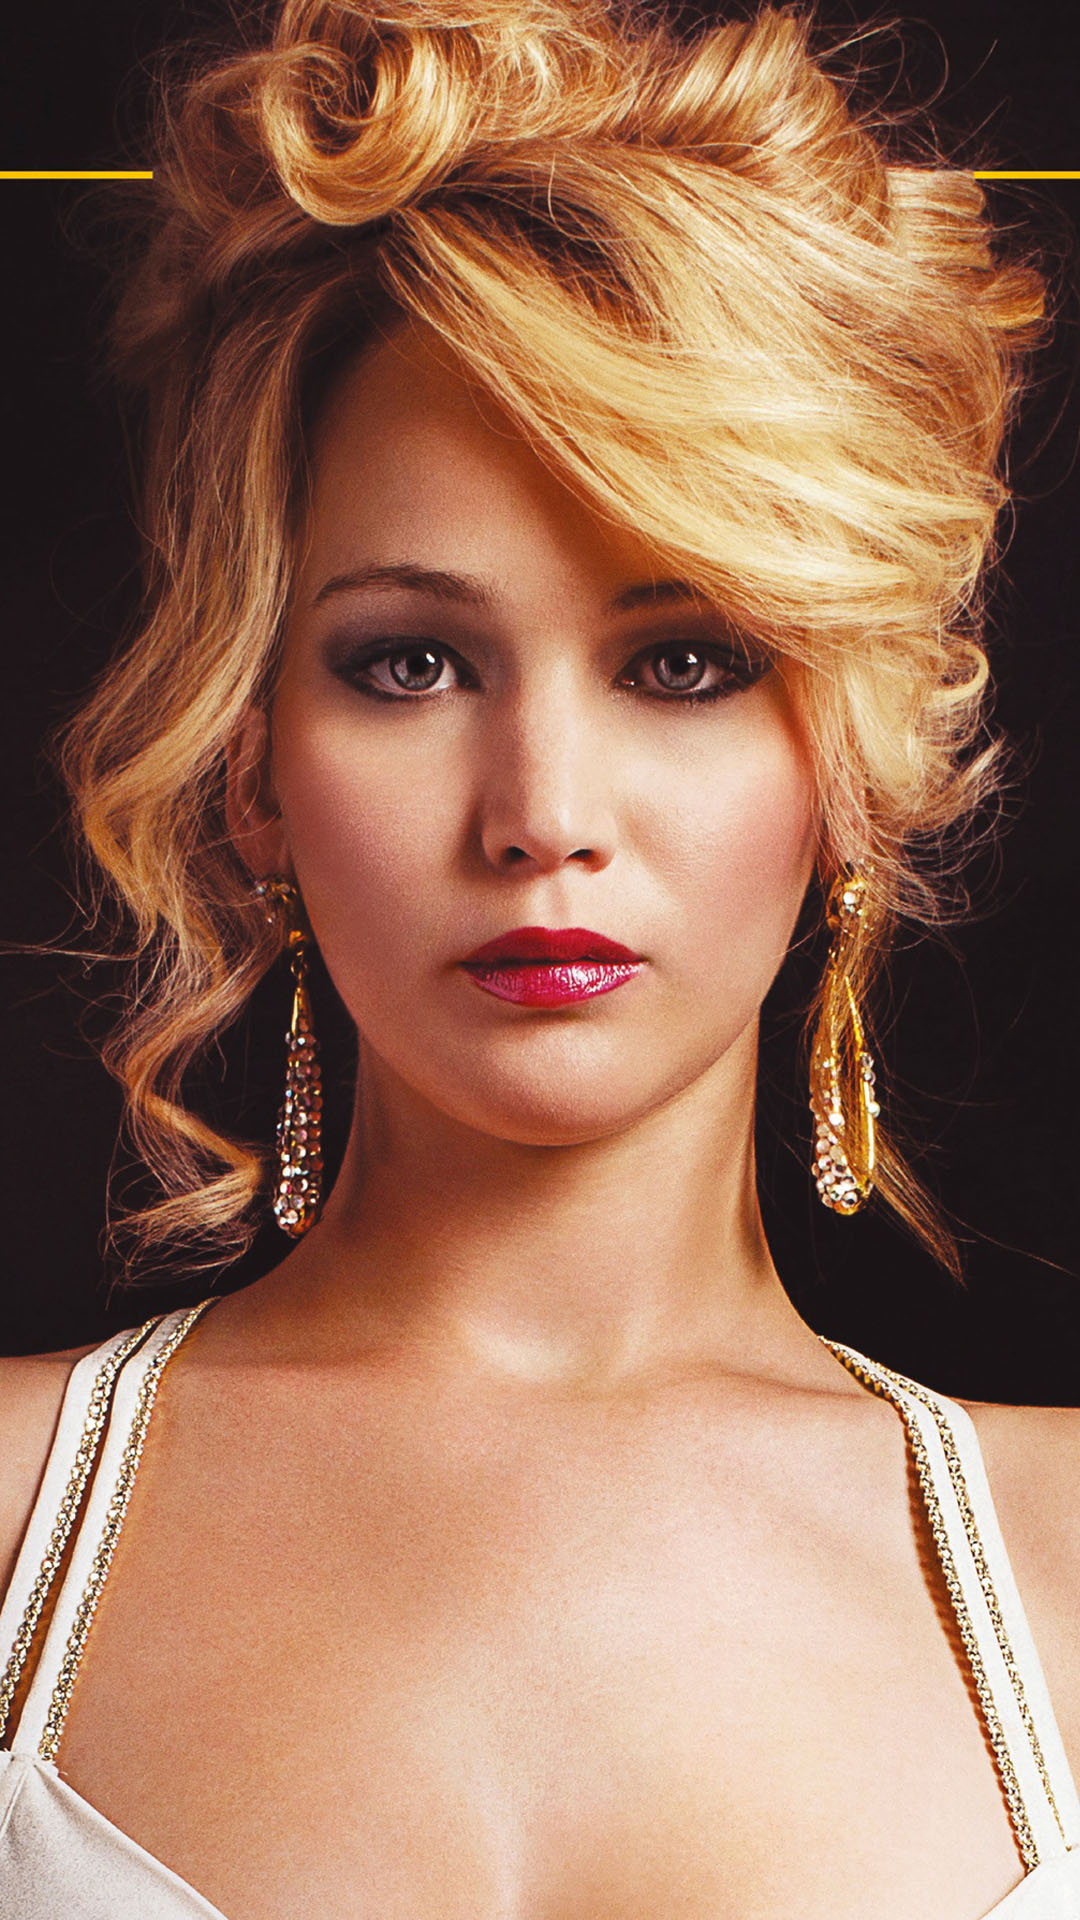 Jennifer-Lawrence-in-American-Hustle-wallpaper-wpc9206438